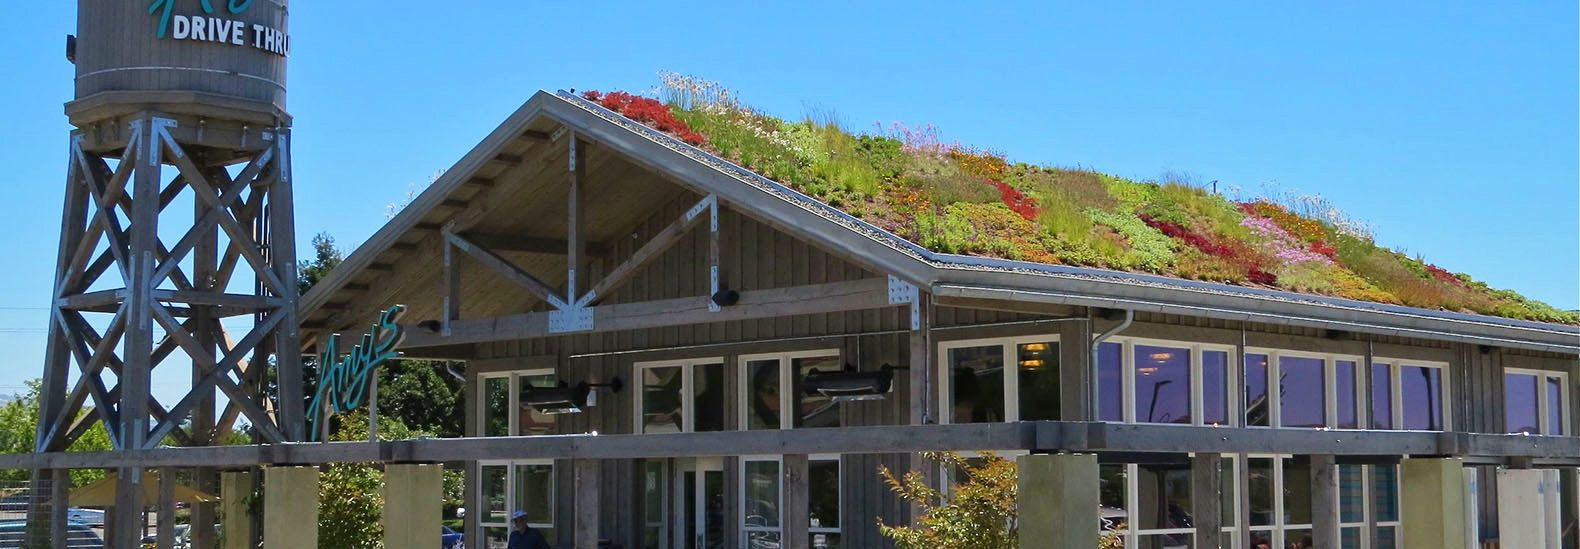 Gorgeous Living Roof Tops Amy S Kitchen Drive Thru Near San Francisco Living Roofs San Francisco Restaurants Green Roof